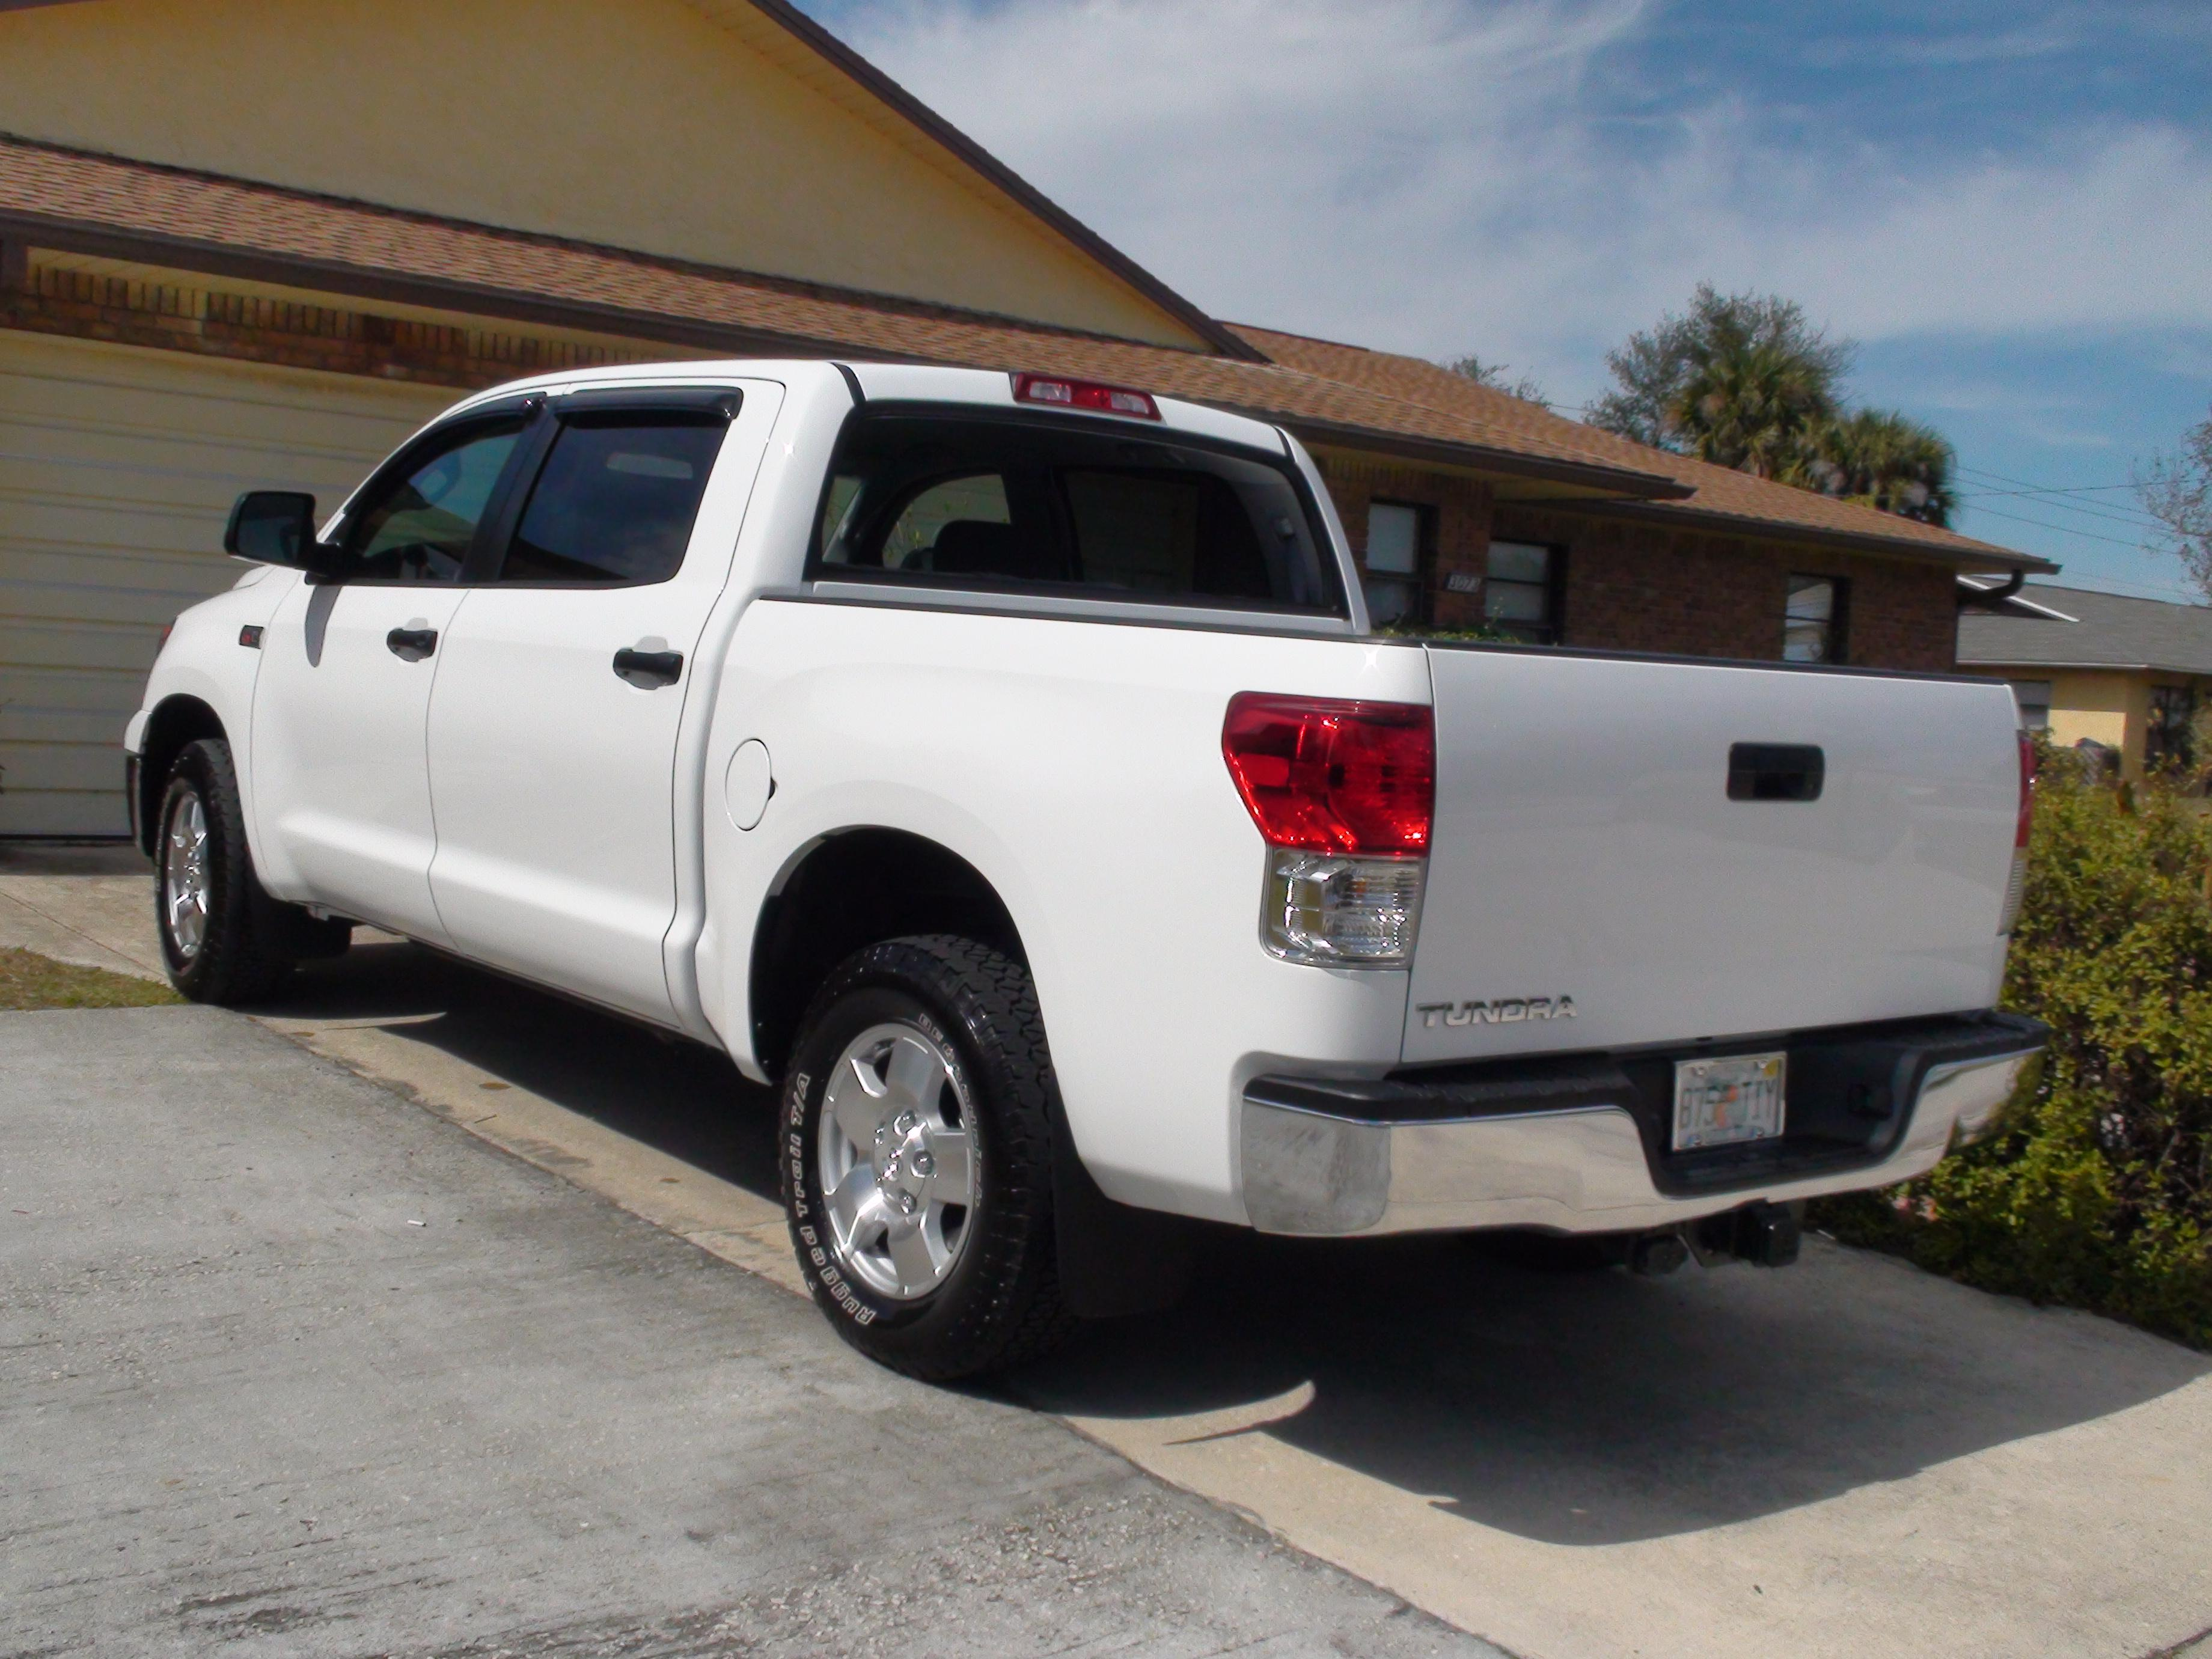 dan326evans 39 s 2010 toyota tundra access cab in merritt. Black Bedroom Furniture Sets. Home Design Ideas